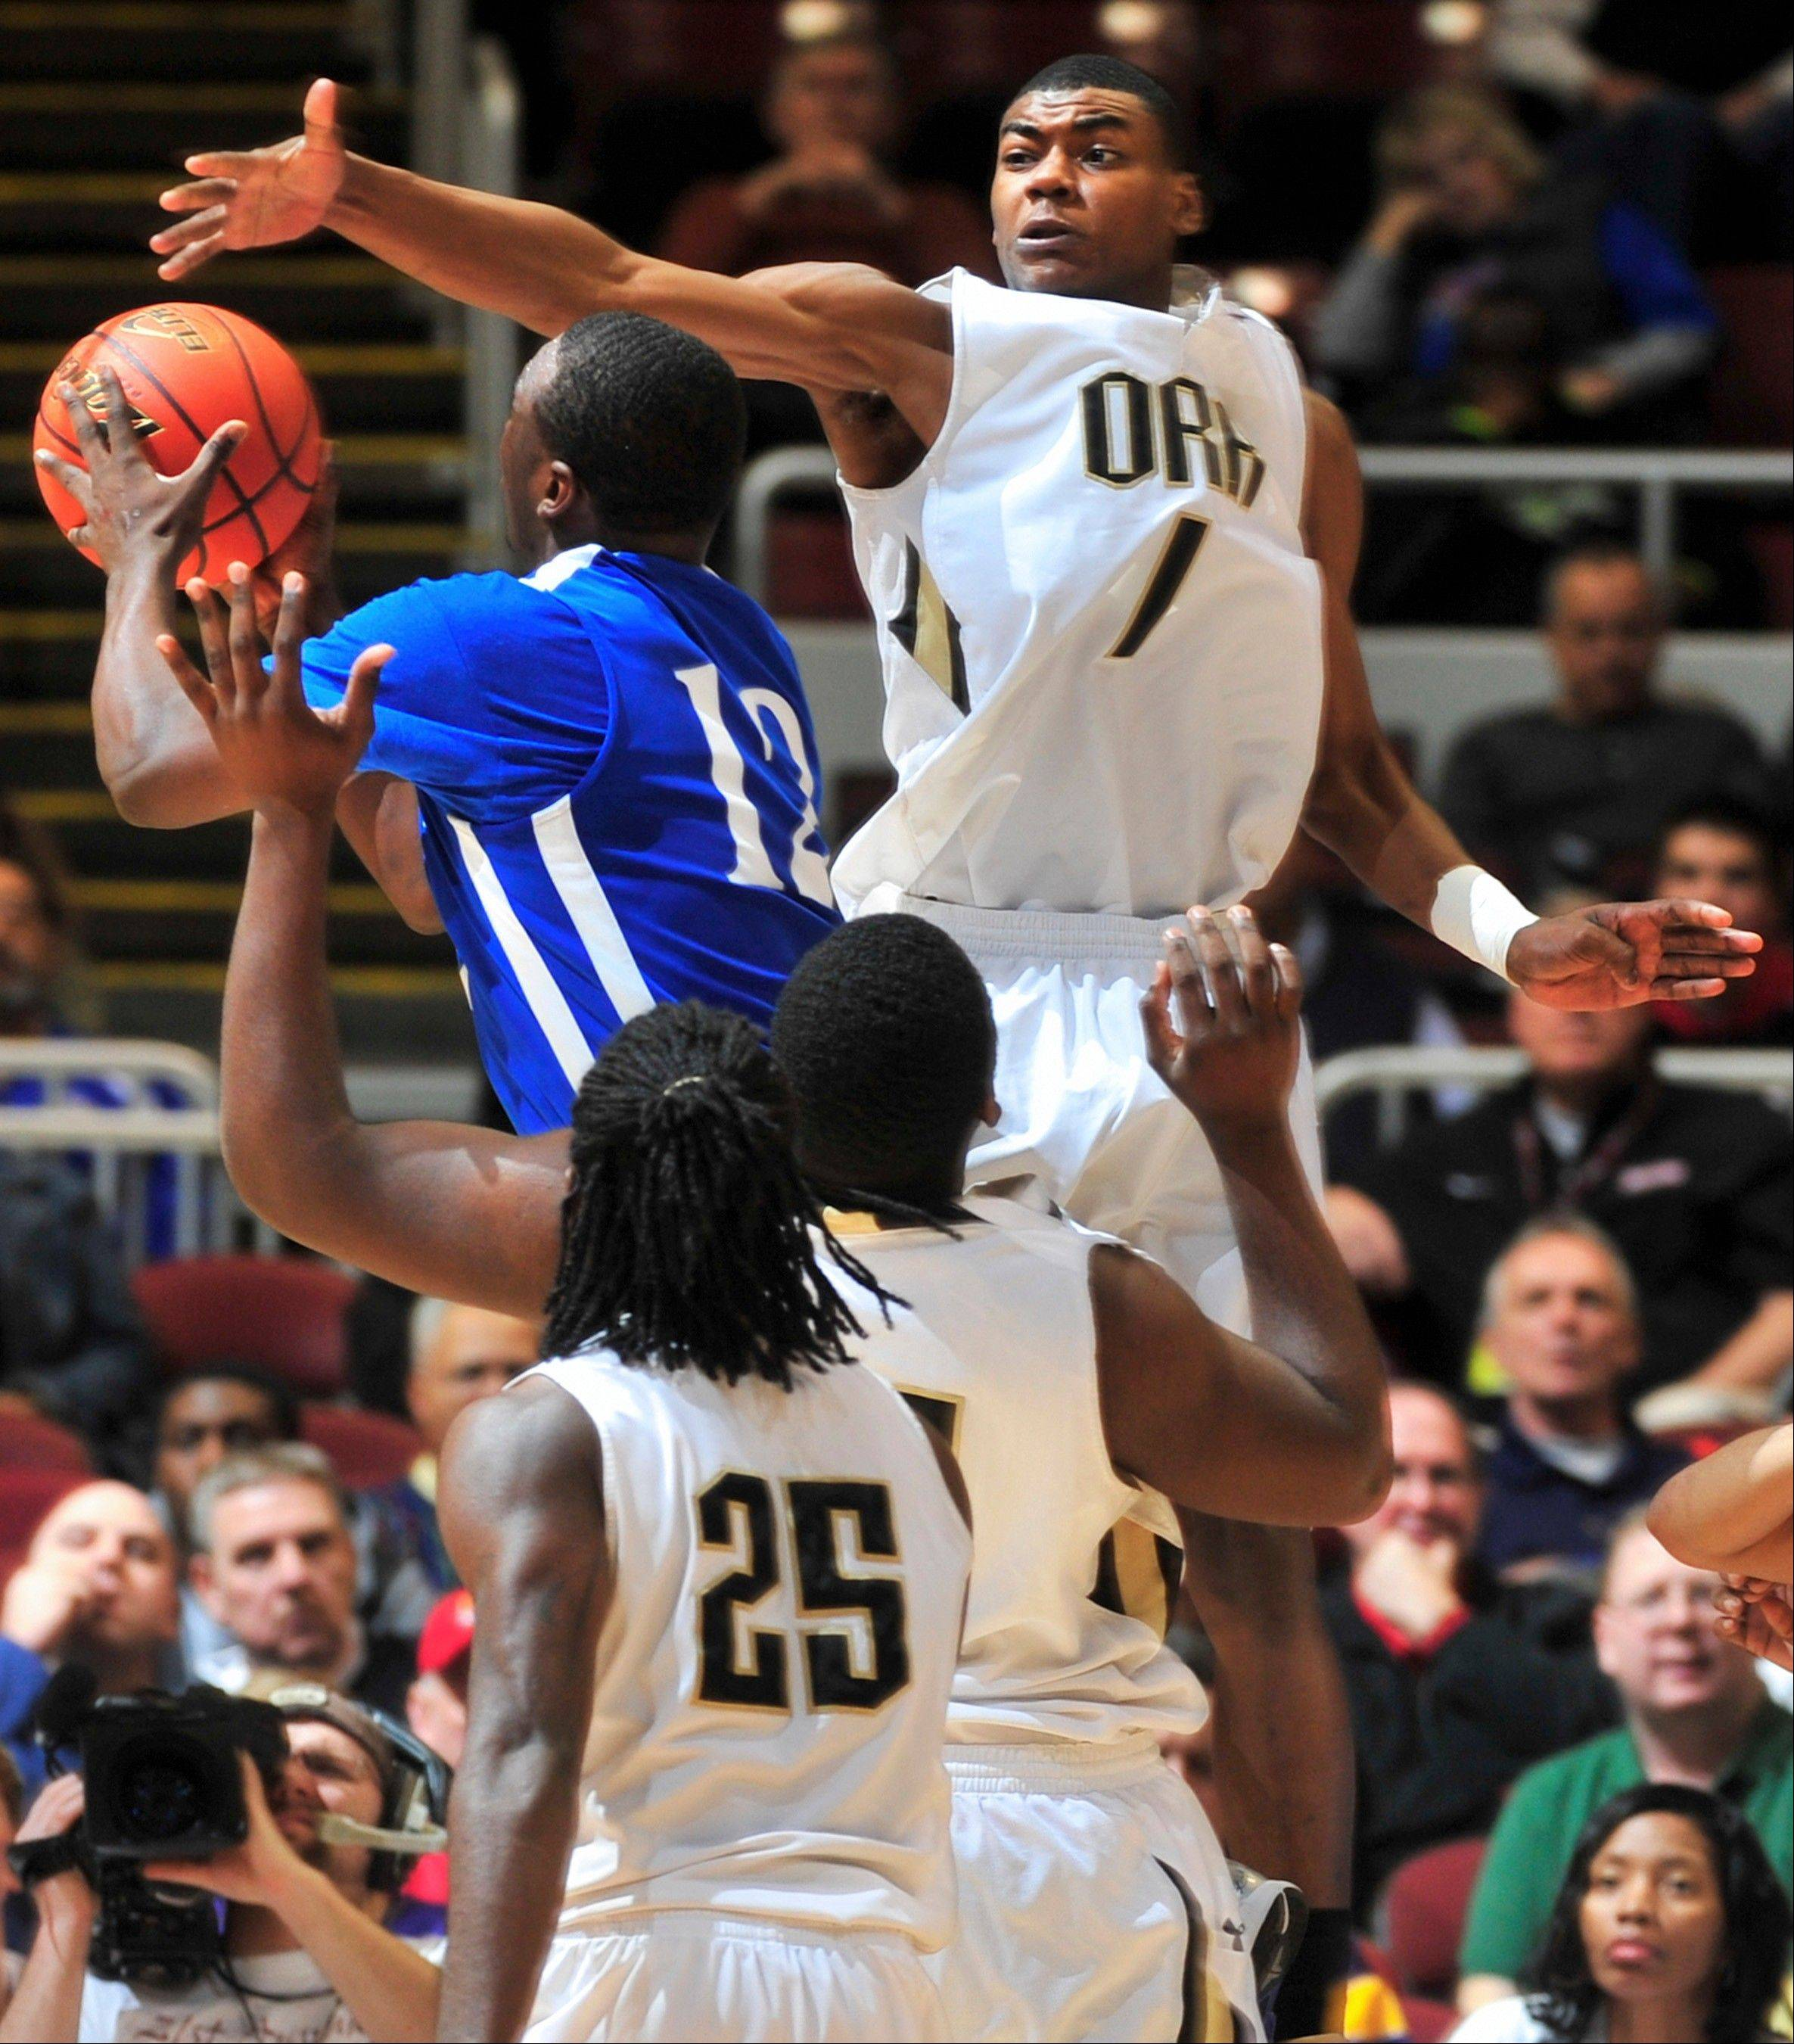 Chicago Orr's Louis Adams rises to block the shot of Cahokia's Vincent Jackson Jr. during Cahokia's Class 3A state semifinal victory Friday in Peoria.